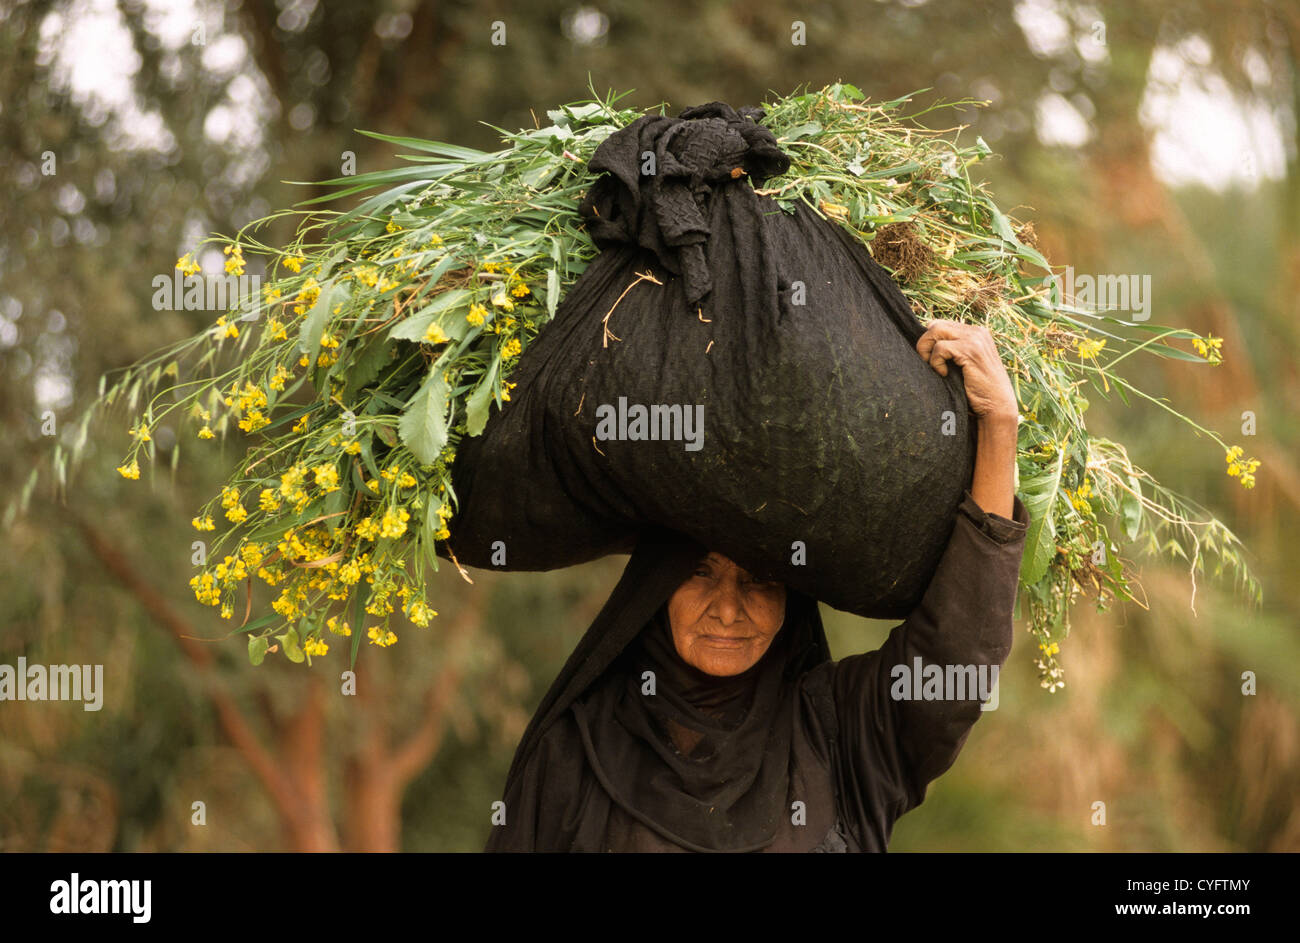 Egypt, Luxor, Nile river, West Bank, woman carrying fodder for cattle - Stock Image